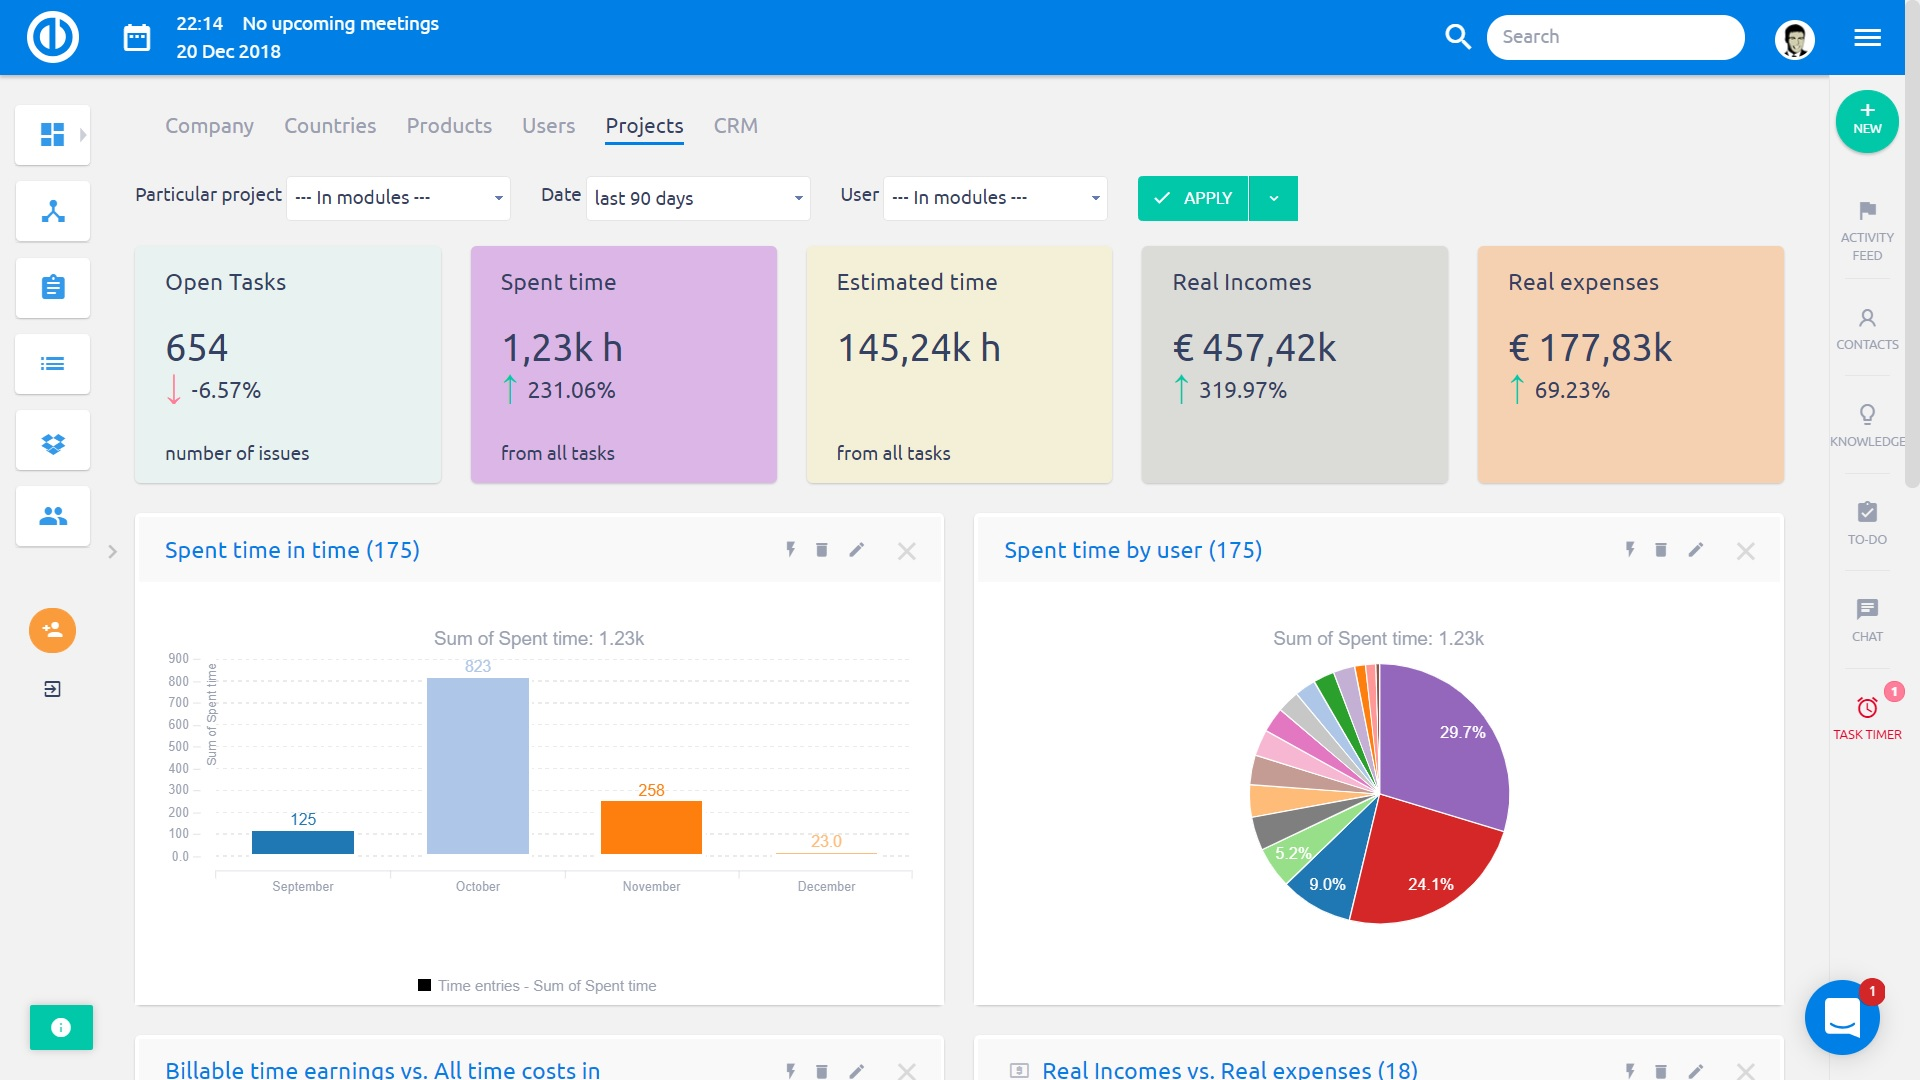 Easy Project 2019 - Business Intelligence - trendy